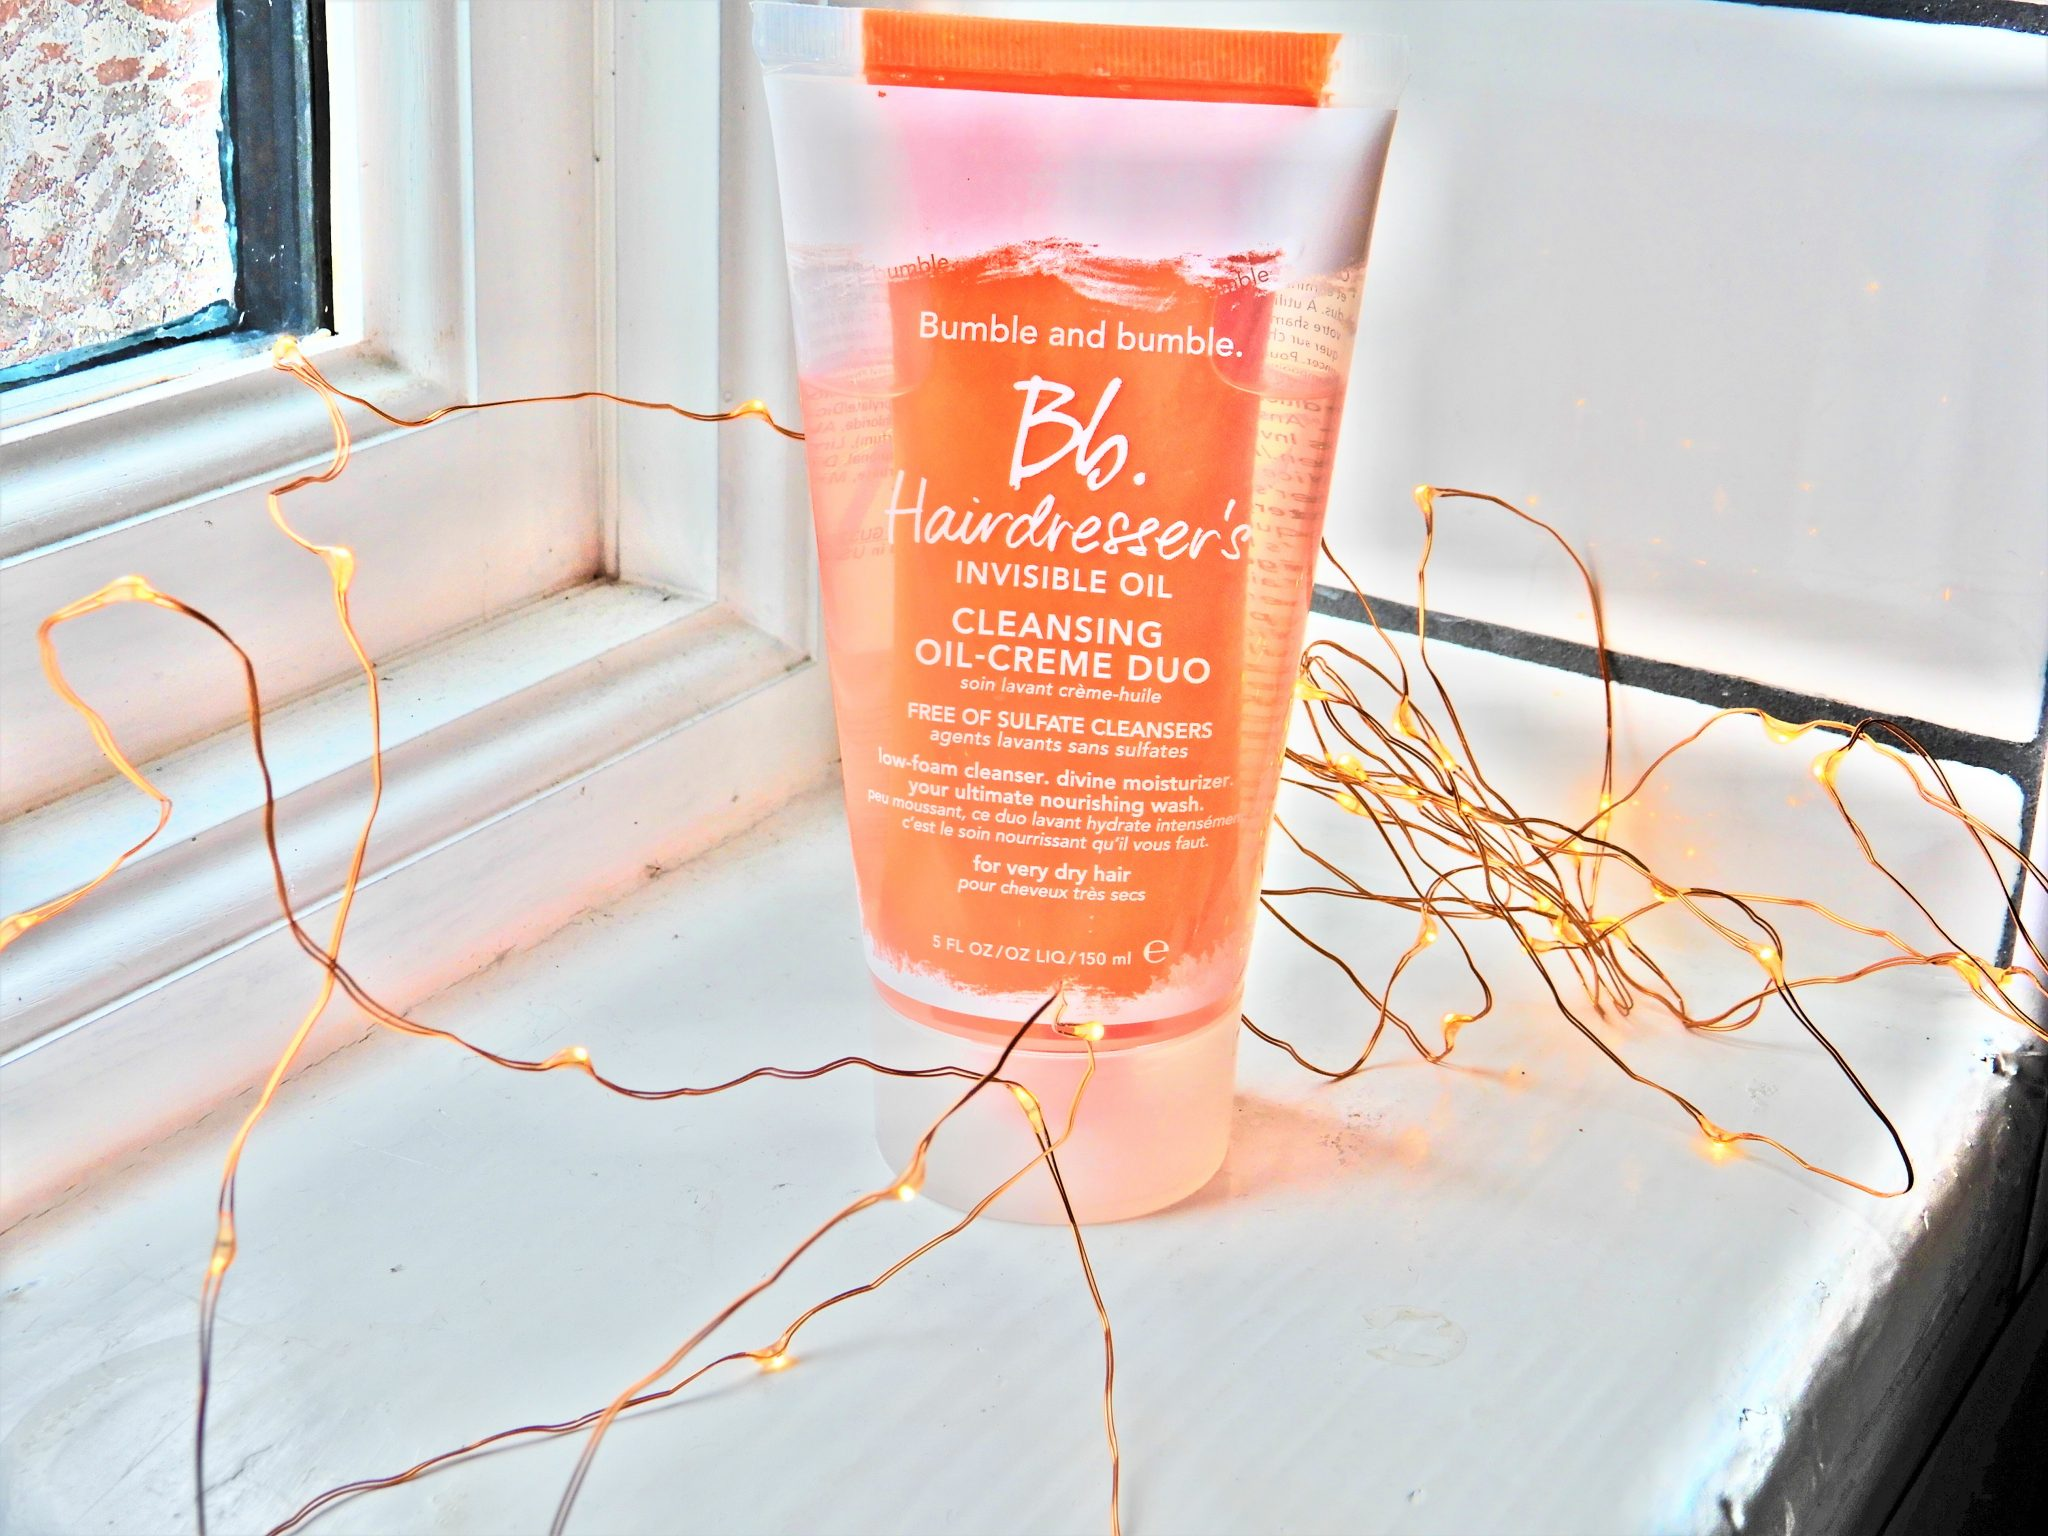 Bumble and bumble Hairdressers invisible Oil Cleansing Creme Duo